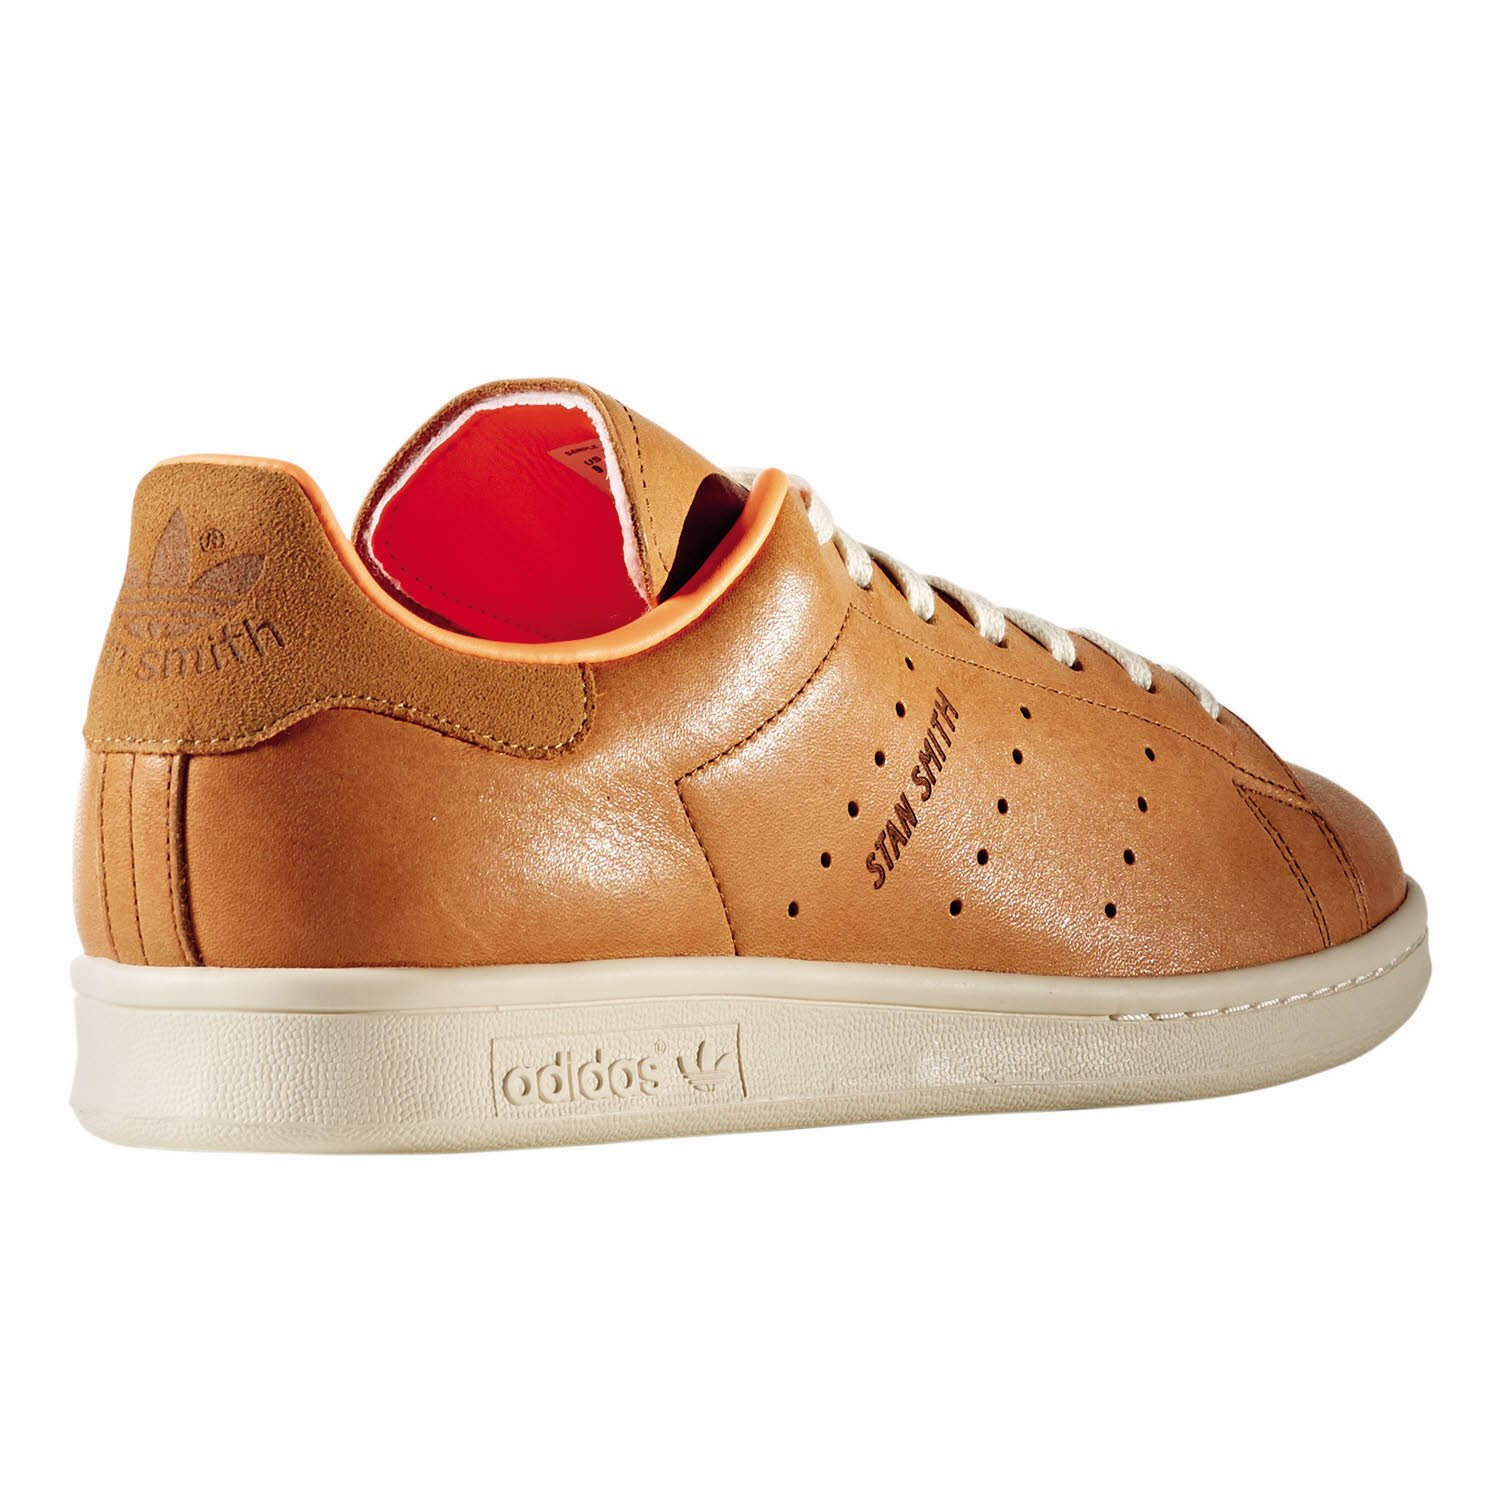 huge selection of 3346a 0a7c1 ... buy chaussures adidas stan smith brun orange blanc taille 39 1 3 c0bce  1d098